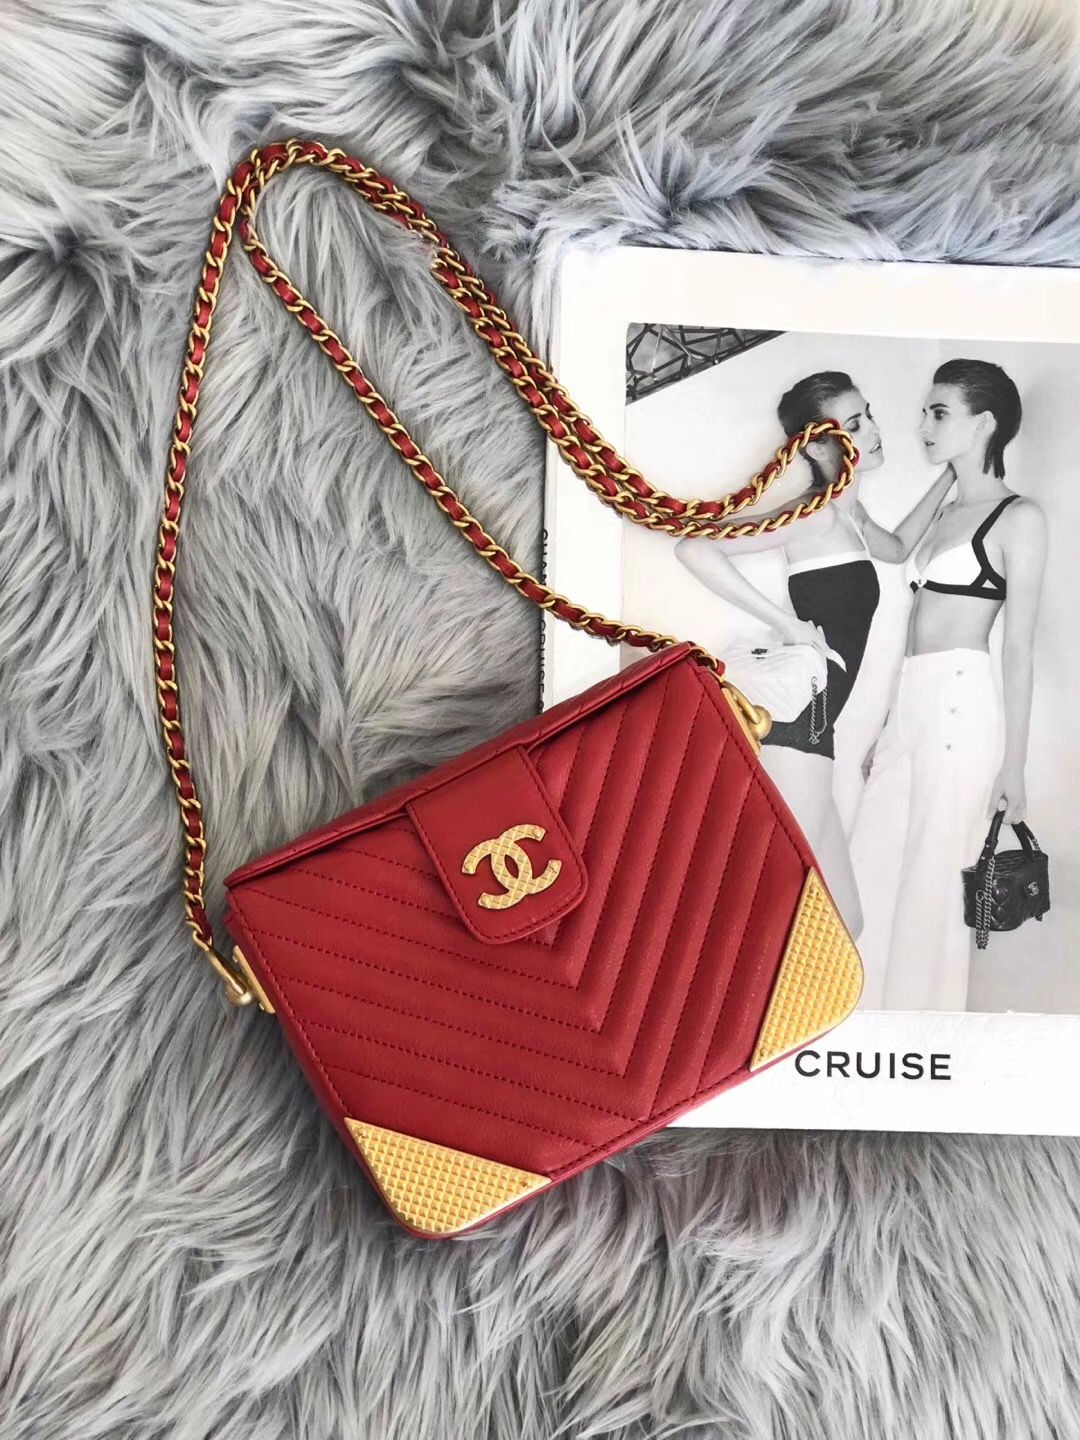 7e37478752bf Details pics from juliabags.ru  designer  designerbags  bags  bagreview   bagreplica  bagcollection  chanel  chanellover  lv  fendi  gucci  celine   chloe ...